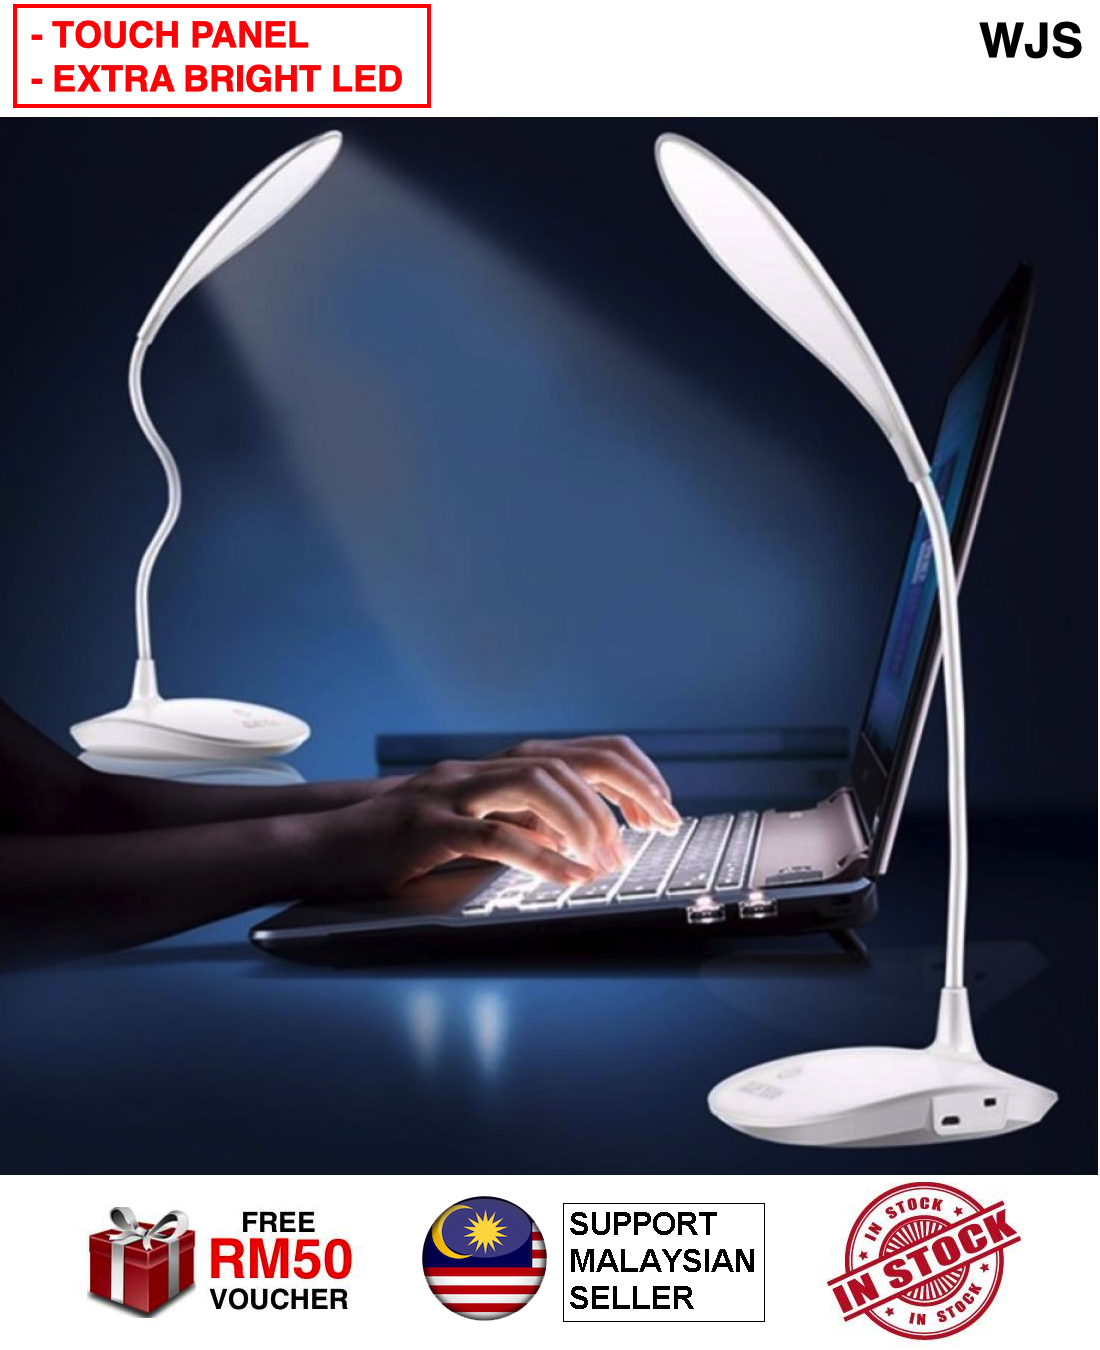 (HIGHER LUMINANCE) WJS Flexible 3 Level Brightness LED Touch Light USB Charging Touch Switch Small Desk Table Lamp Table Light Table LED Student Dormitory Desk Lamp BLUE WHITE PINK [FREE RM 50 VOUCHER]